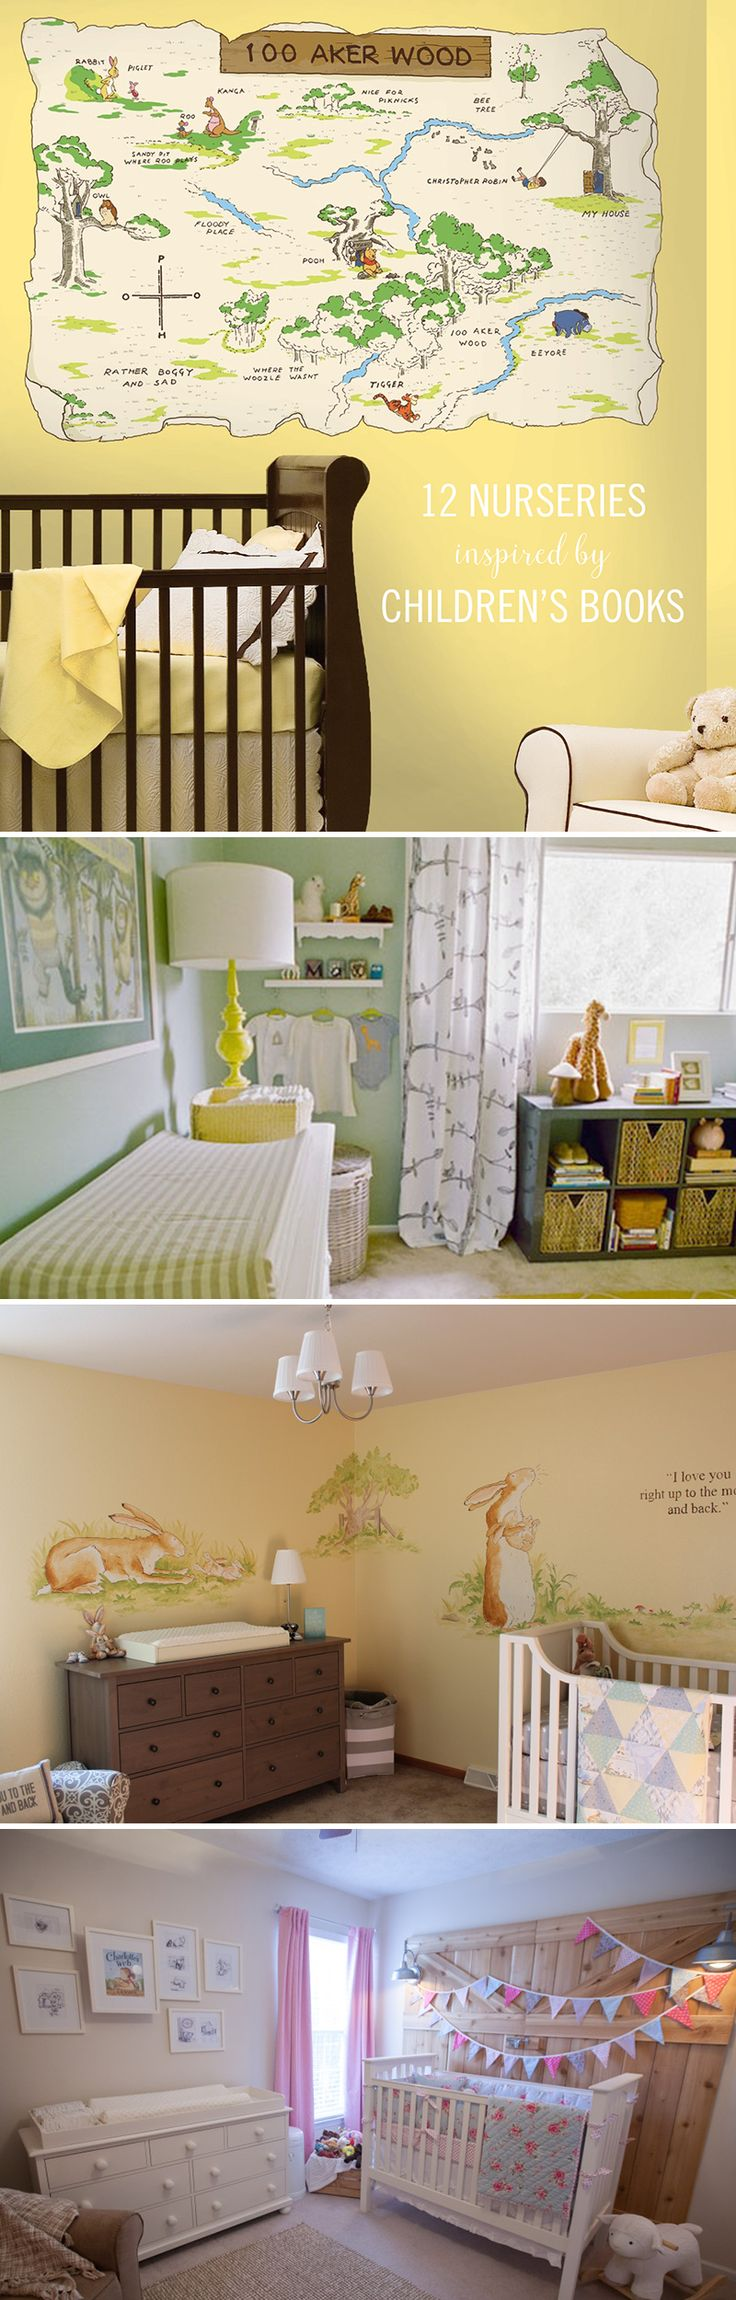 Books can be the most influential sparks of imagination. They bring you to another world within your mind — and children's books are where it all starts. So why not let those stories inspire their room? These literary nurseries will transport your family right into your favorite story. Click for more nursery ideas inspired by children's books.